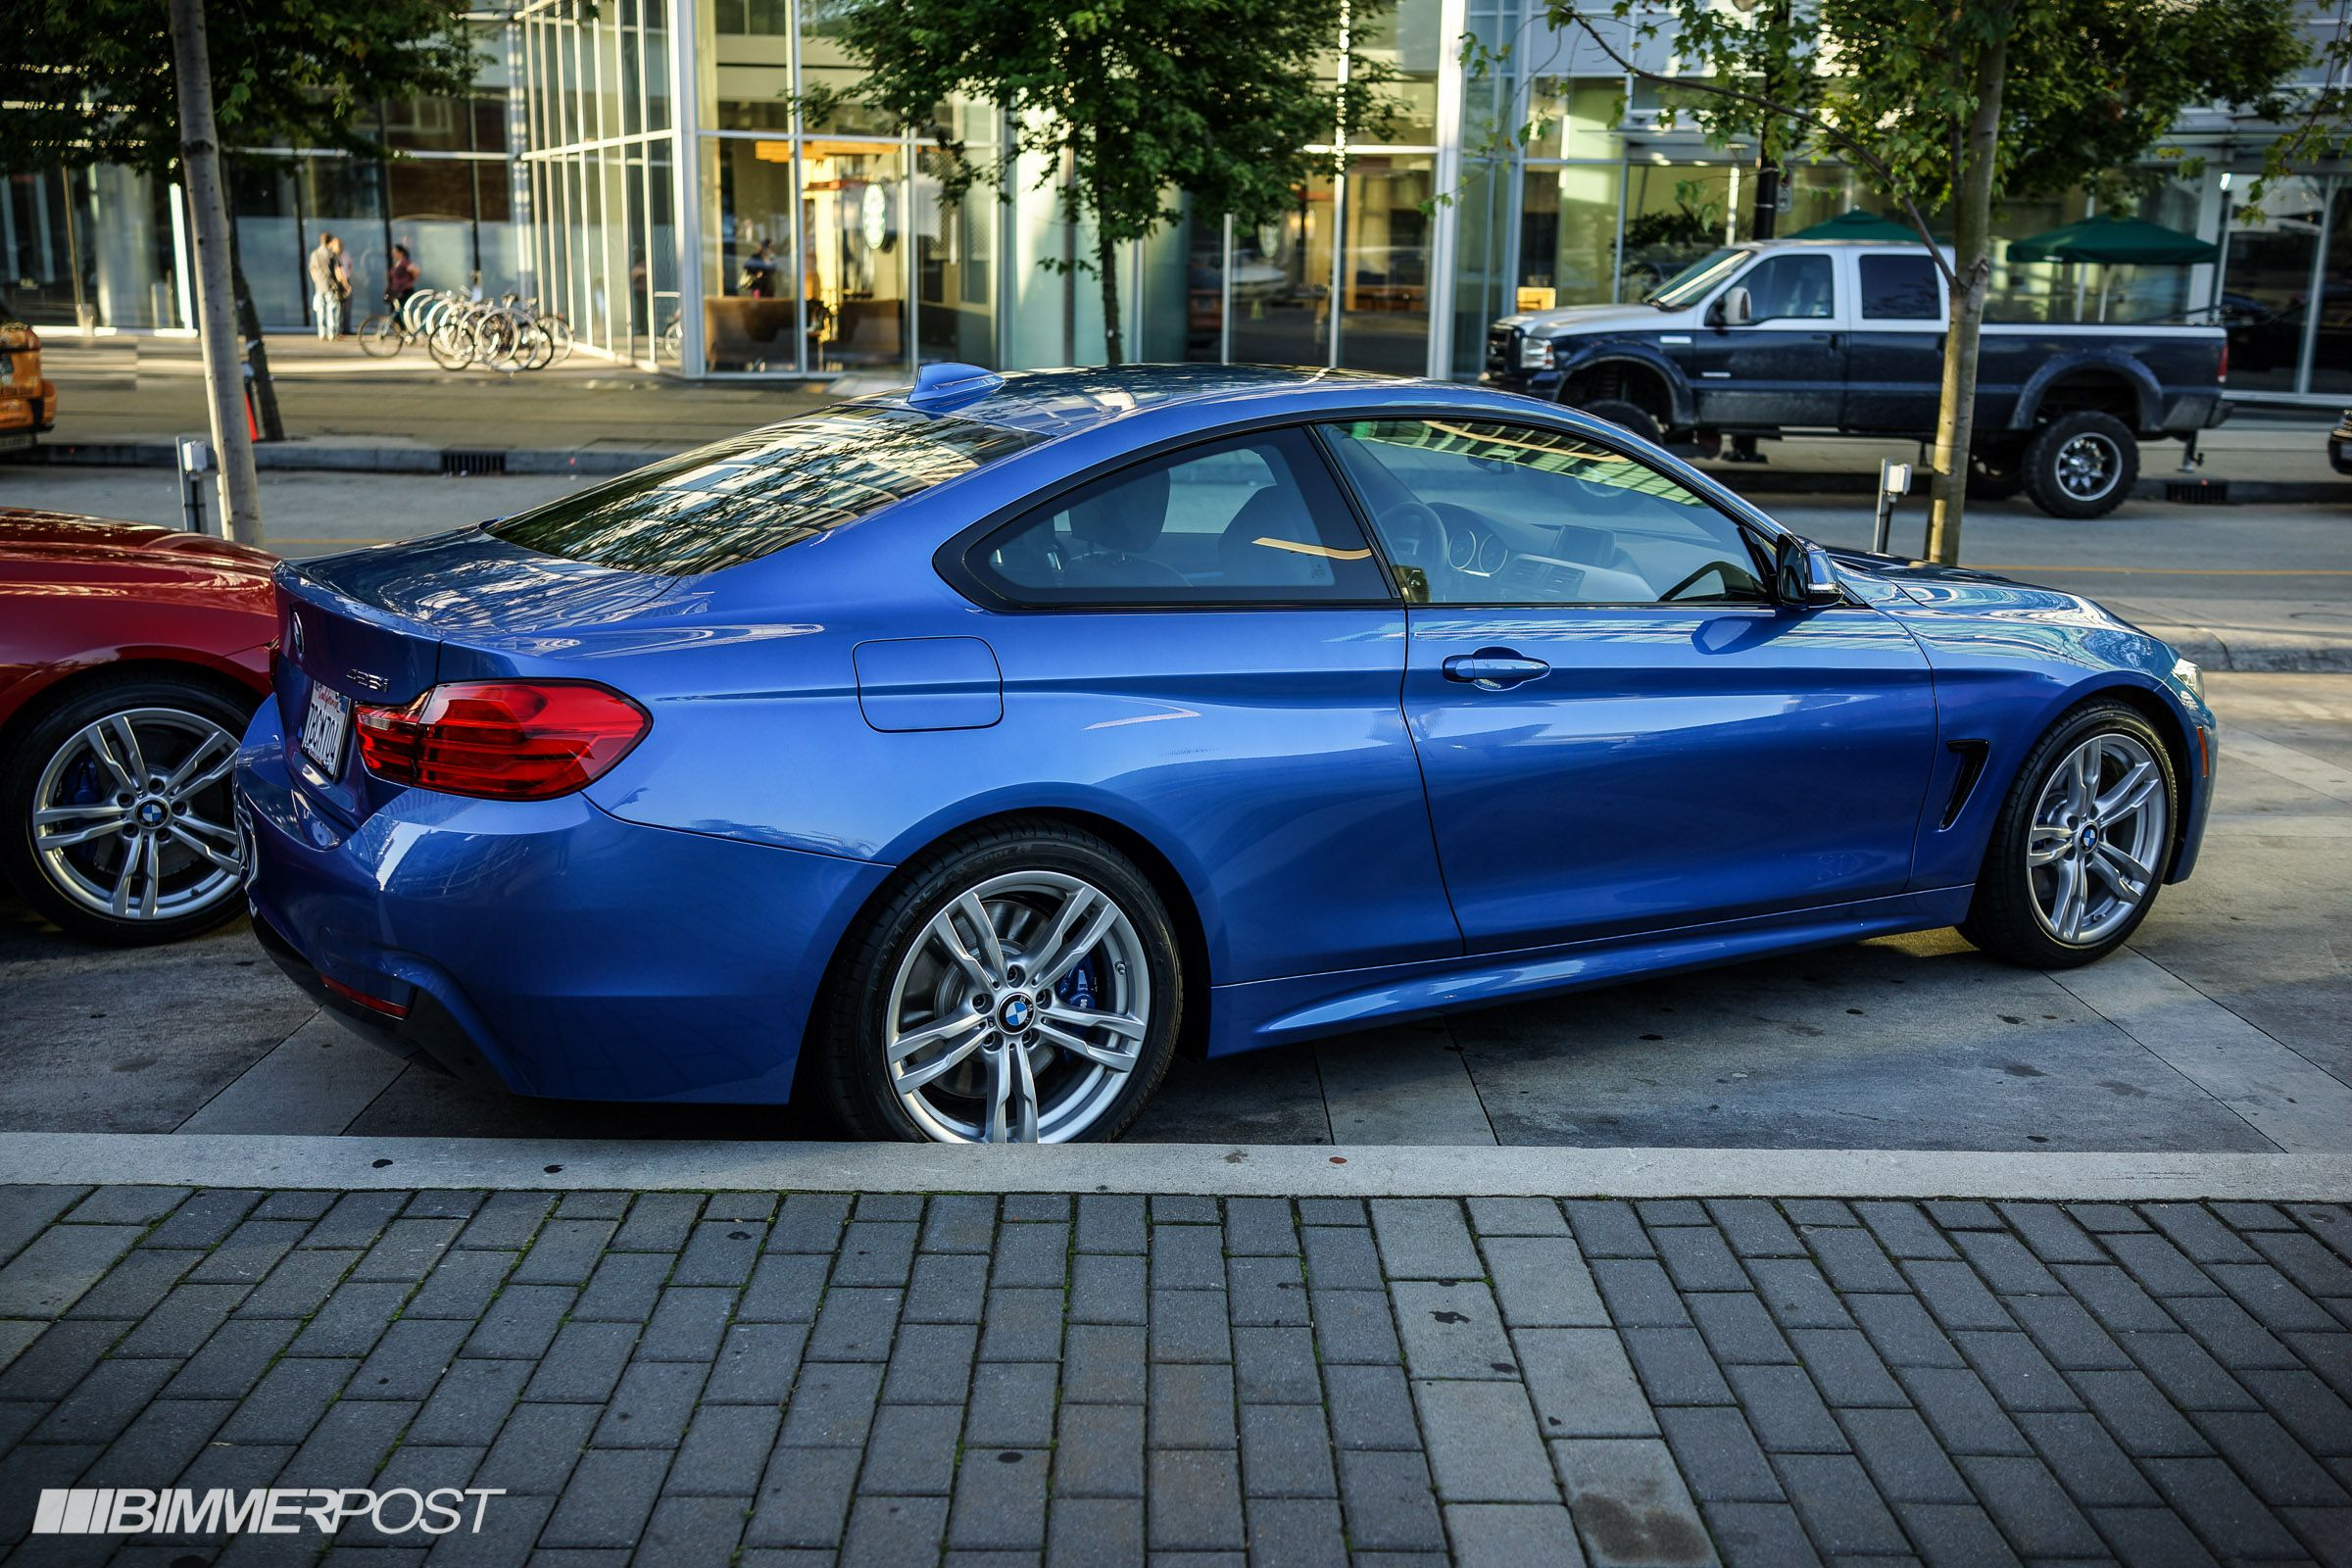 Bmw Na Launch Event 428i In Estoril Blue And Black And Walkaround Video Compilation Bmw Estoril Blue Bmw Series